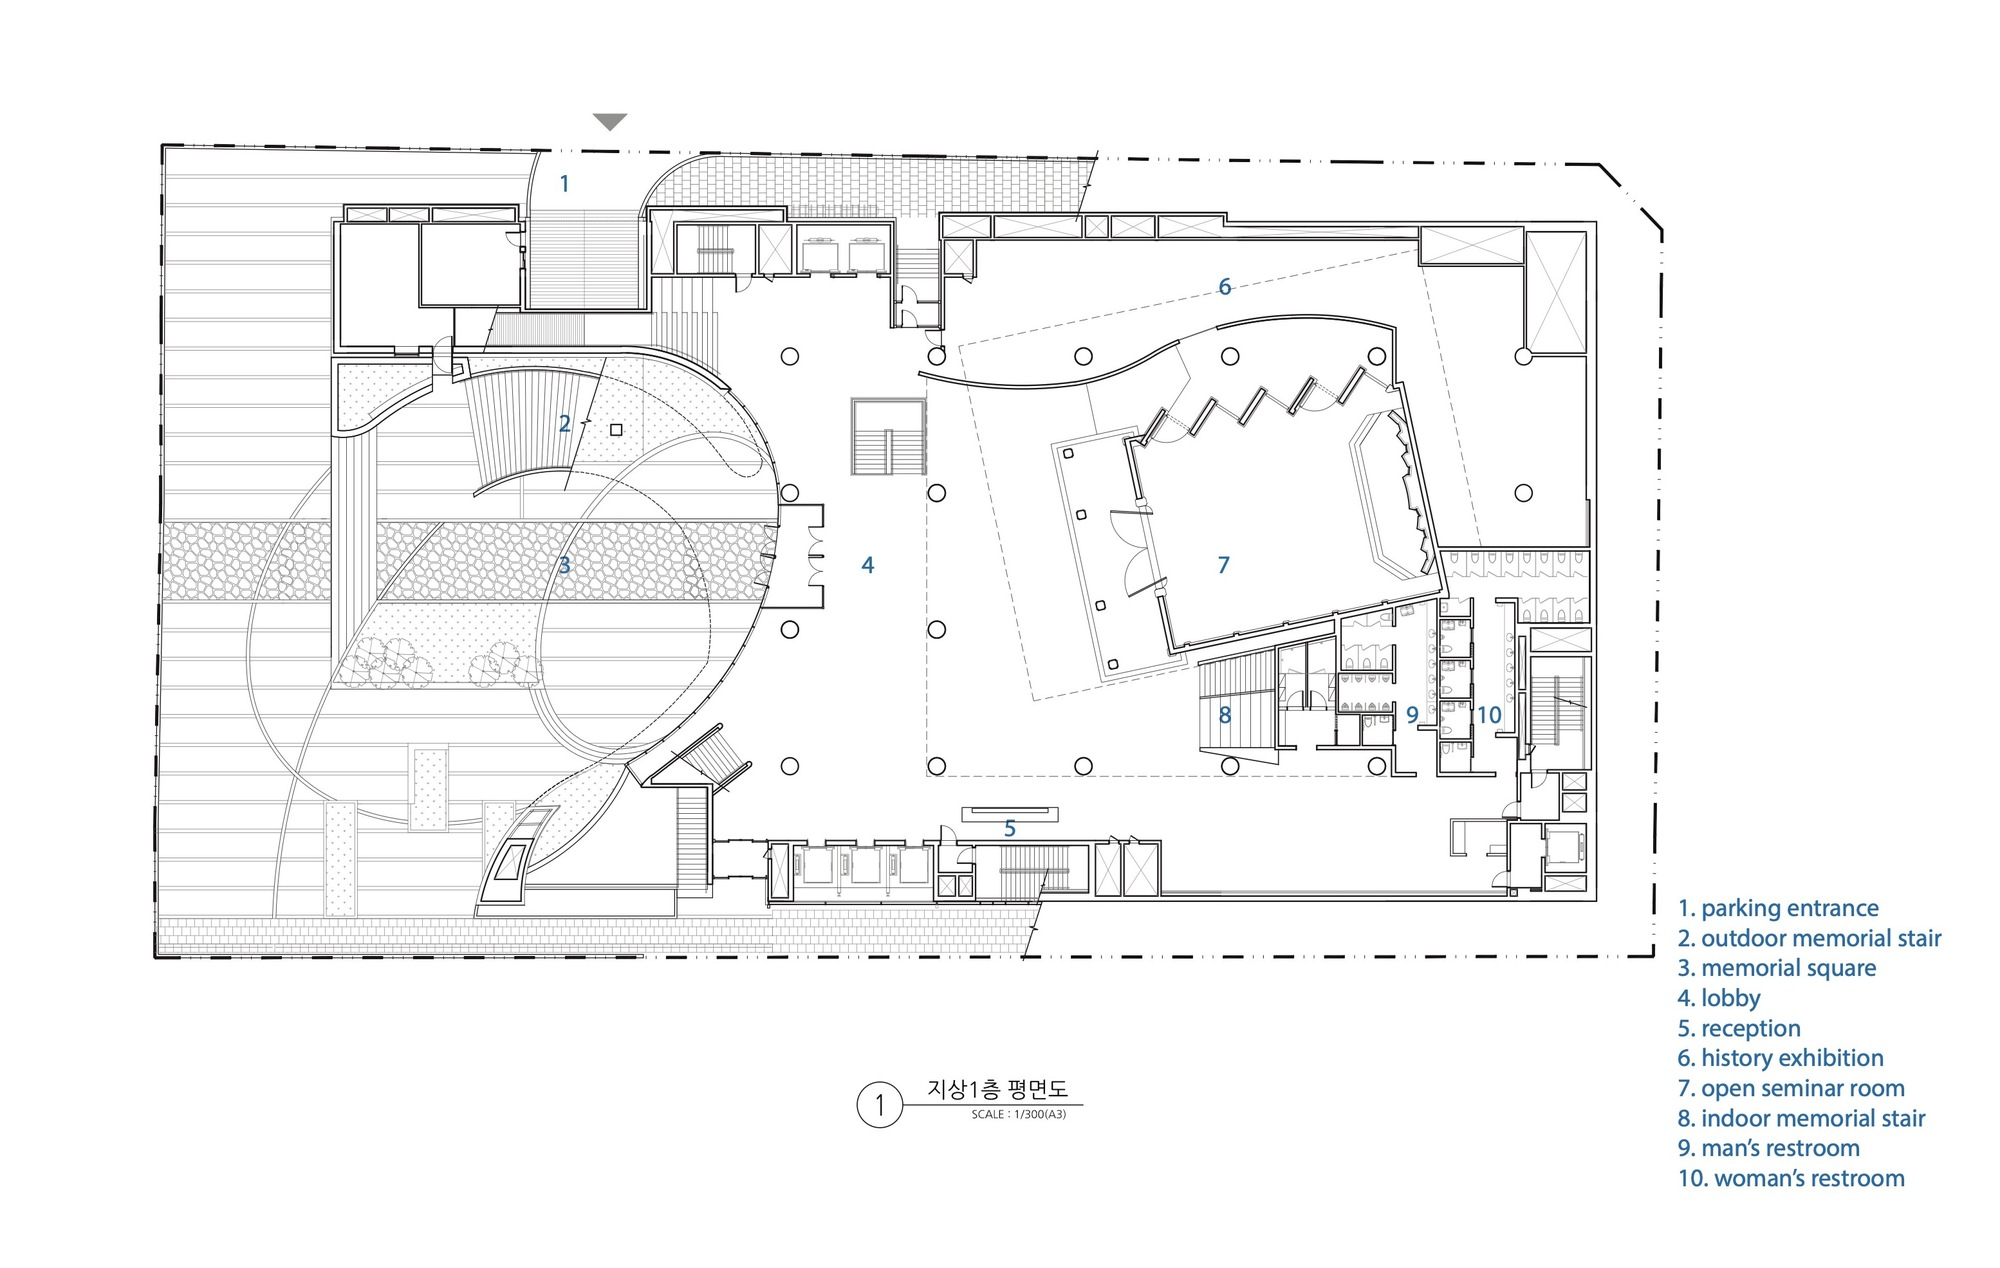 22_Drawing_1F_Floor_Plan.jpg